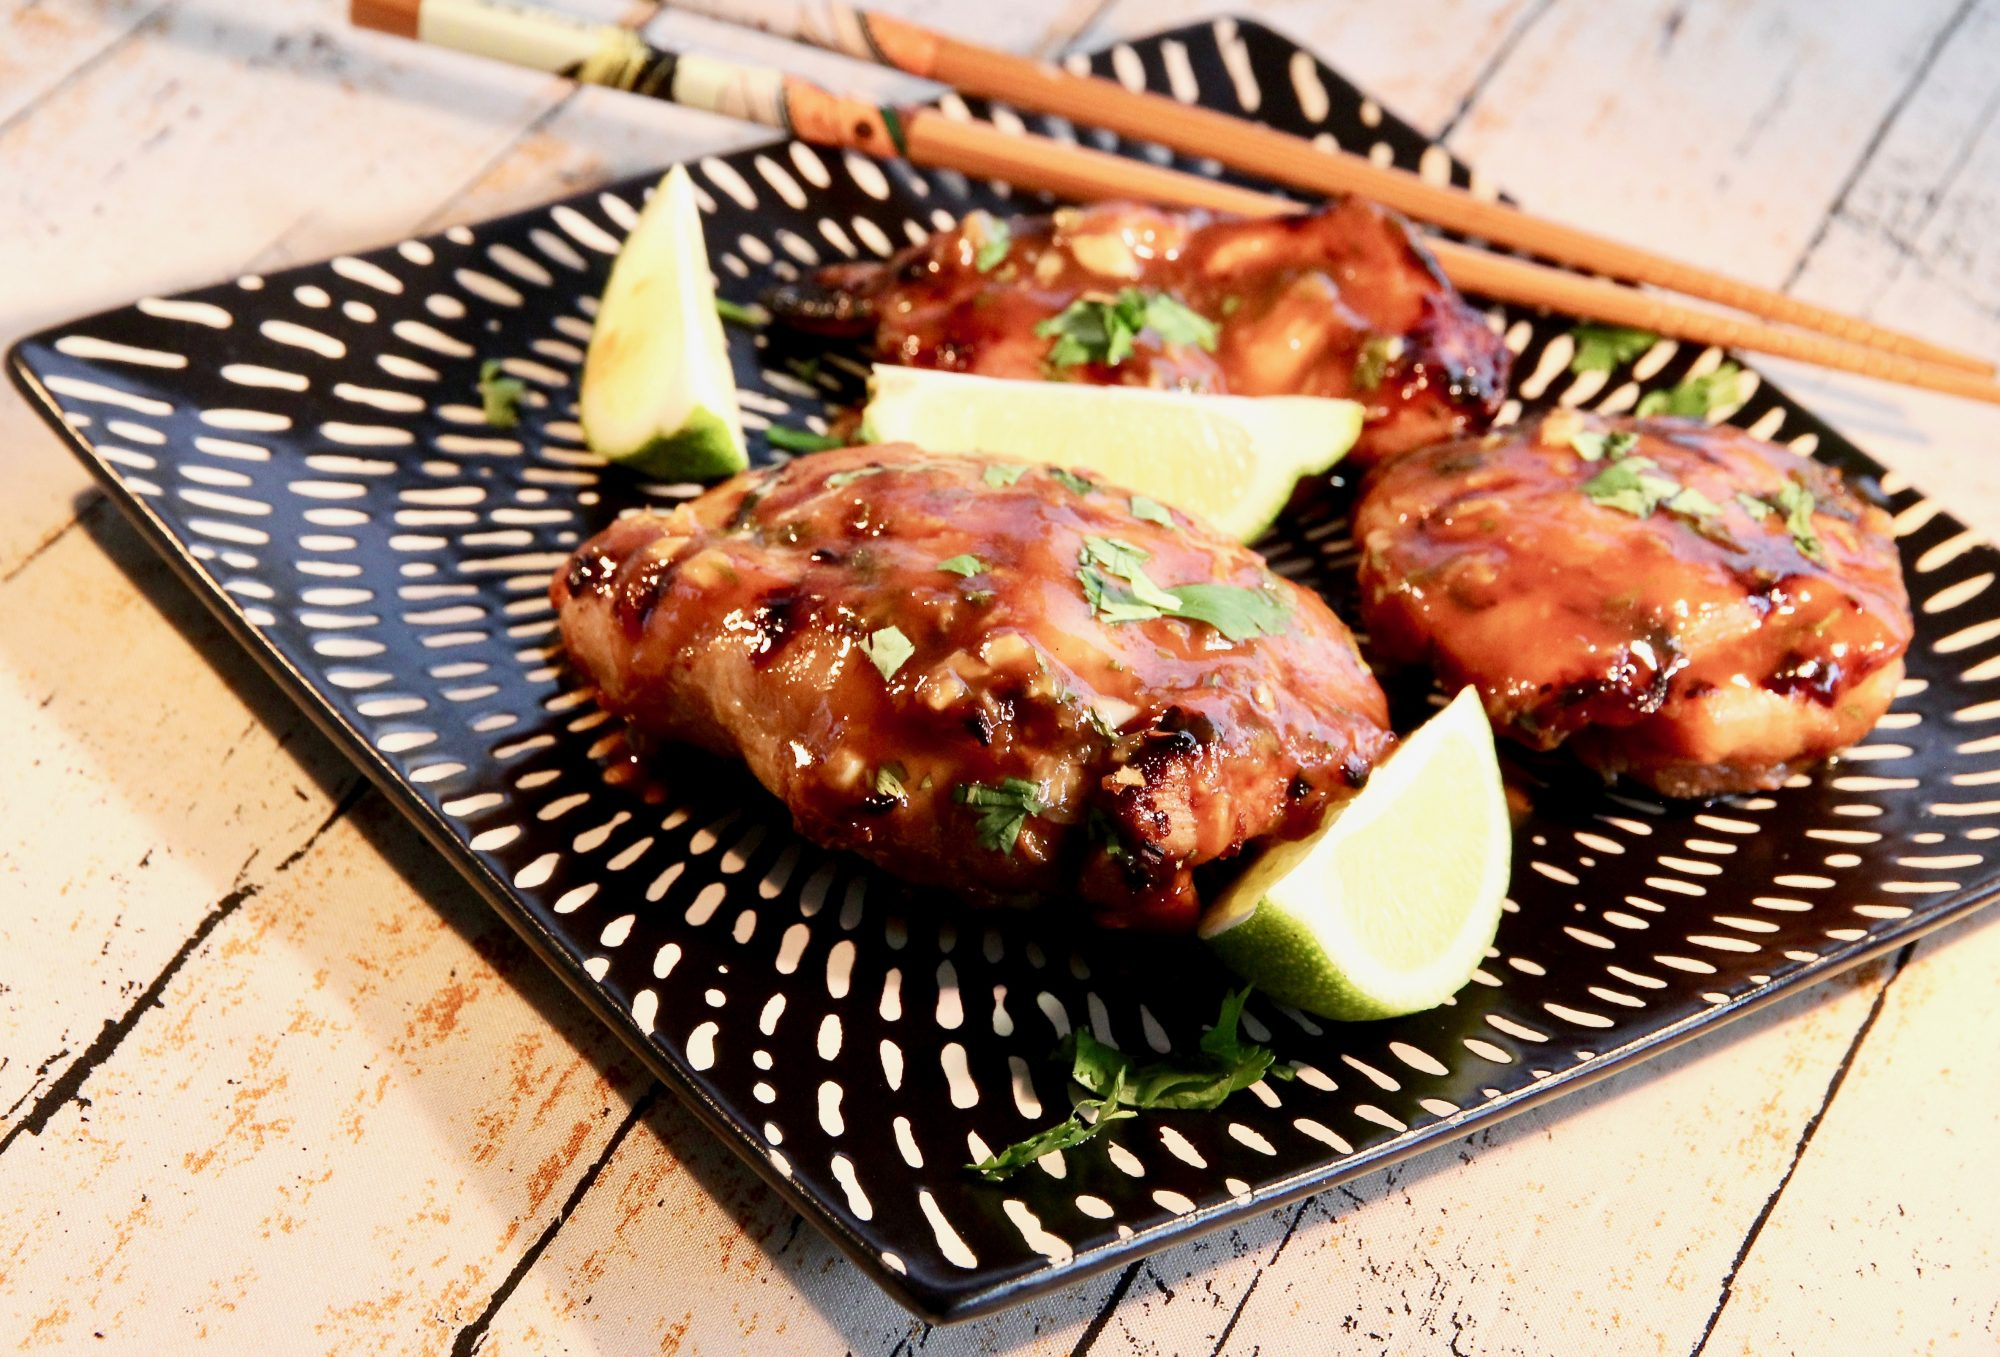 grilled chicken thighs with lime wedges on black patterned plate